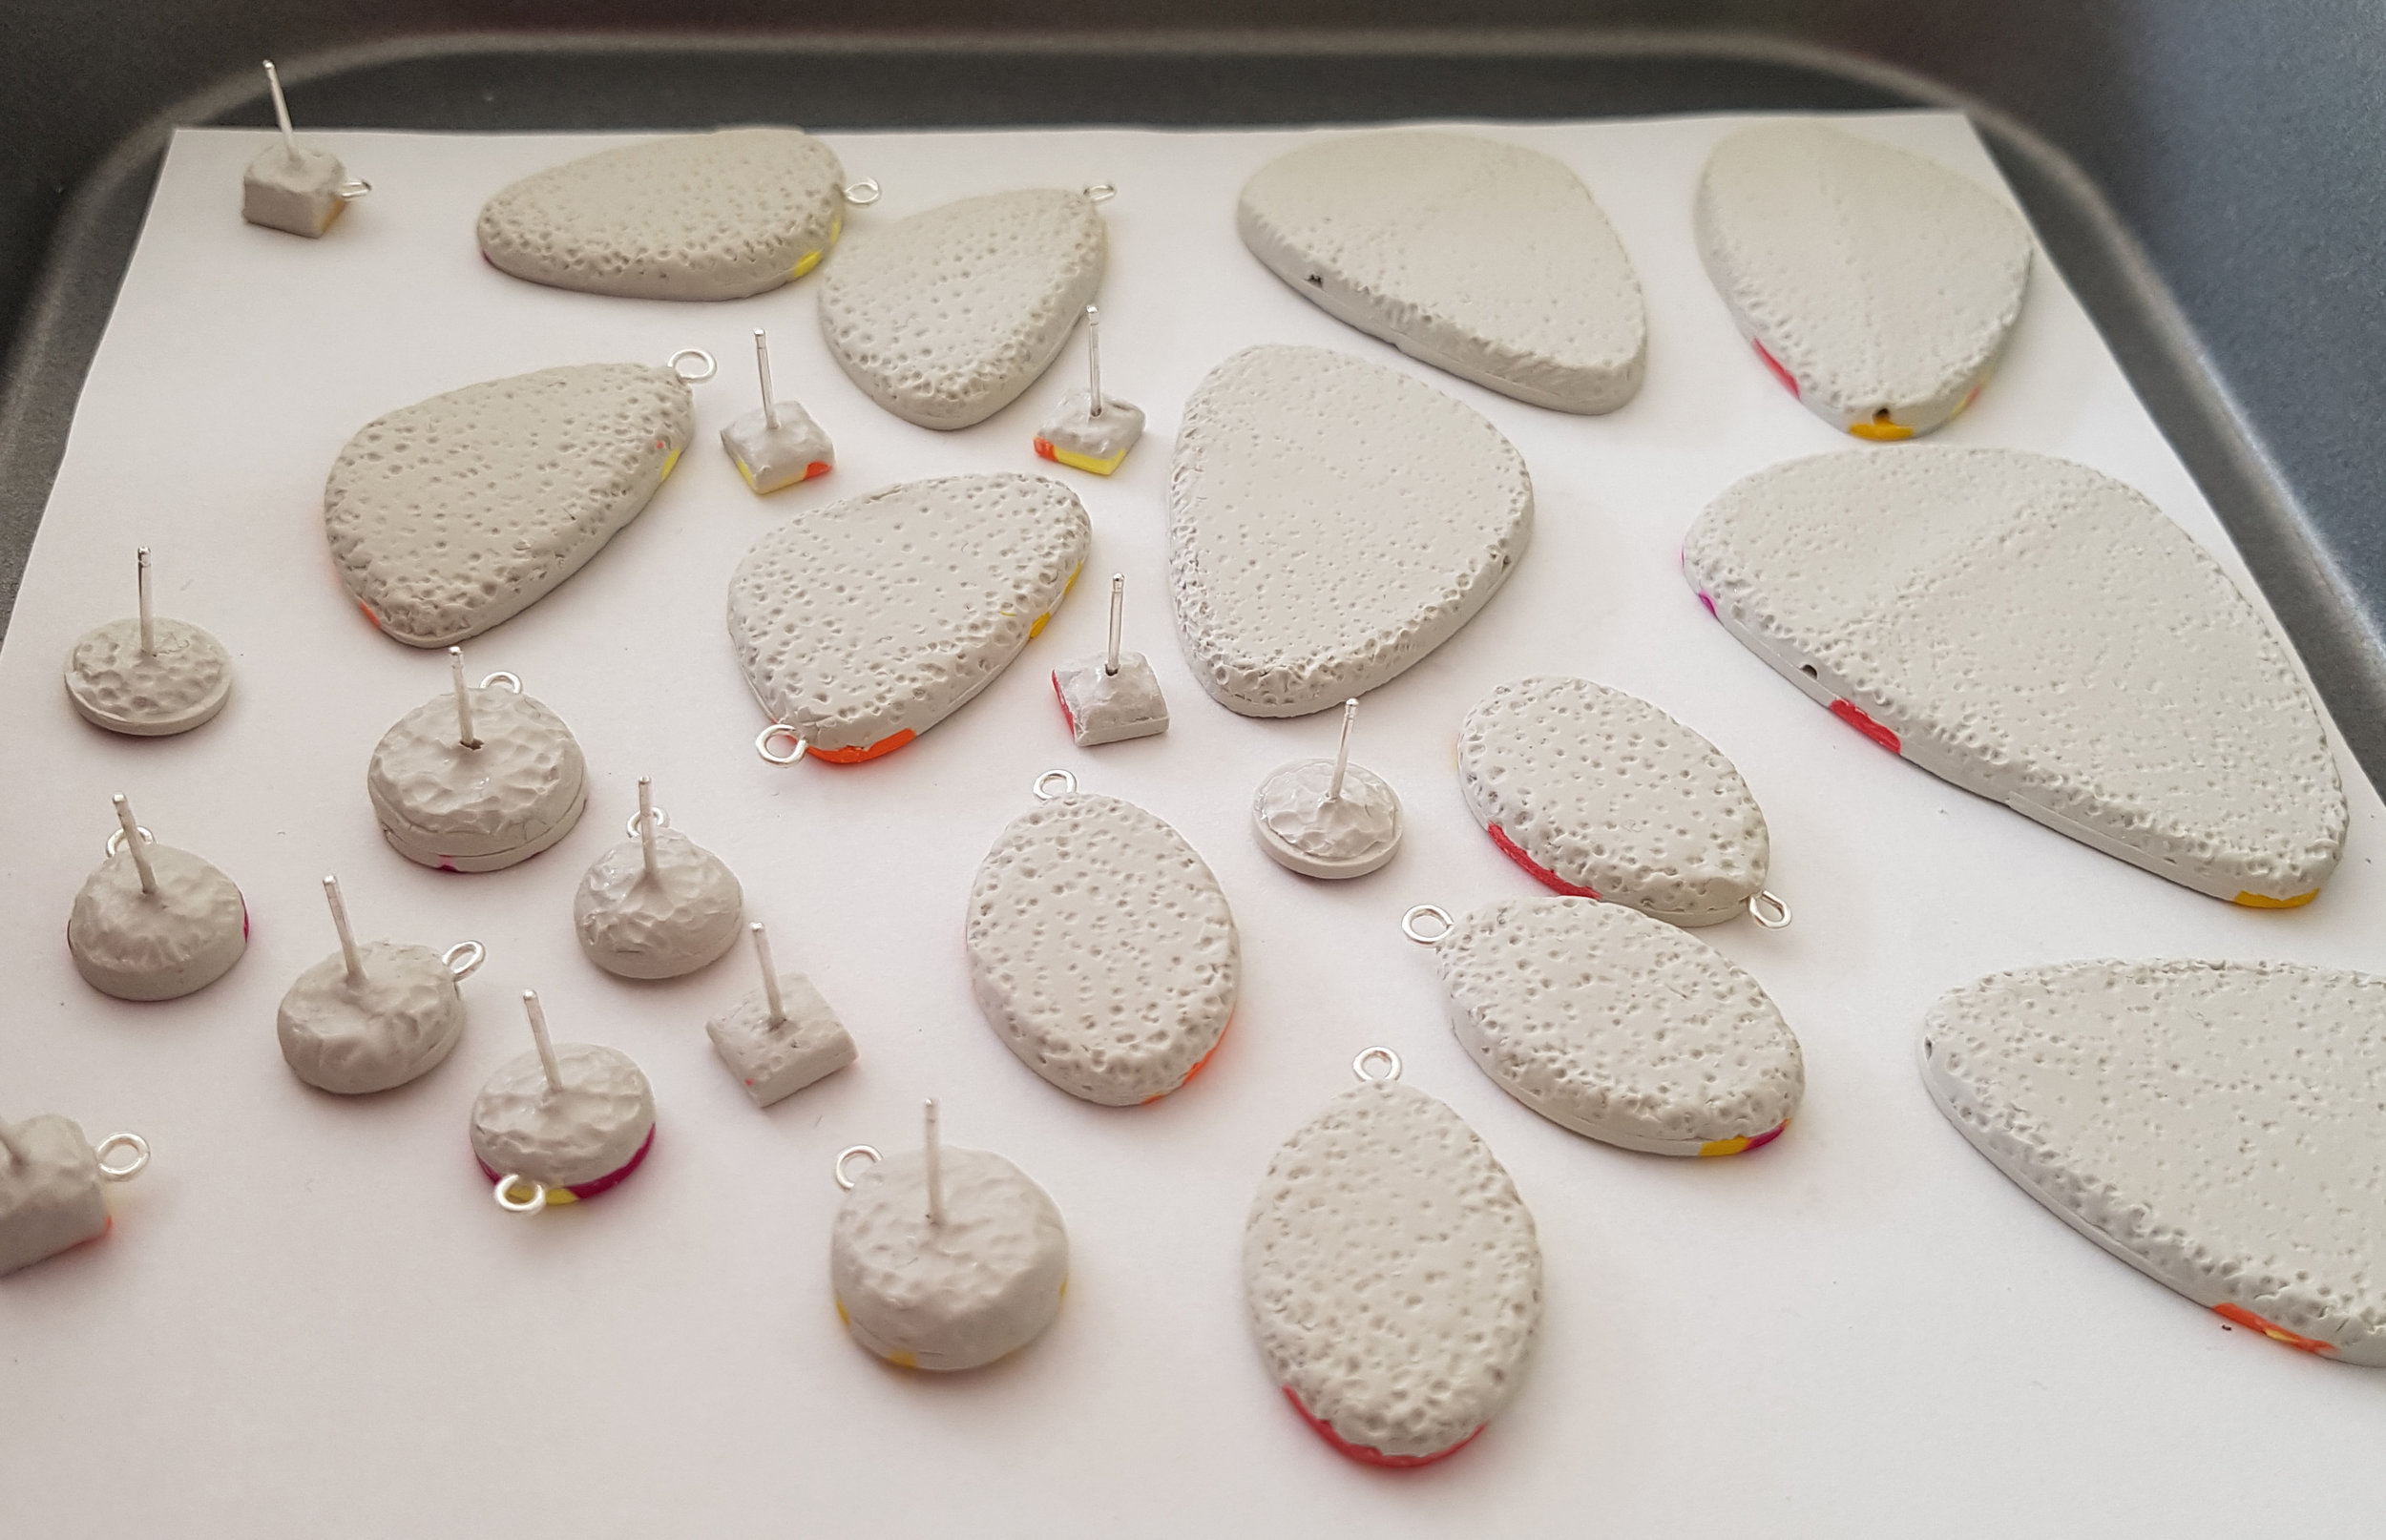 Beads with wires, channels and posts ready for curing